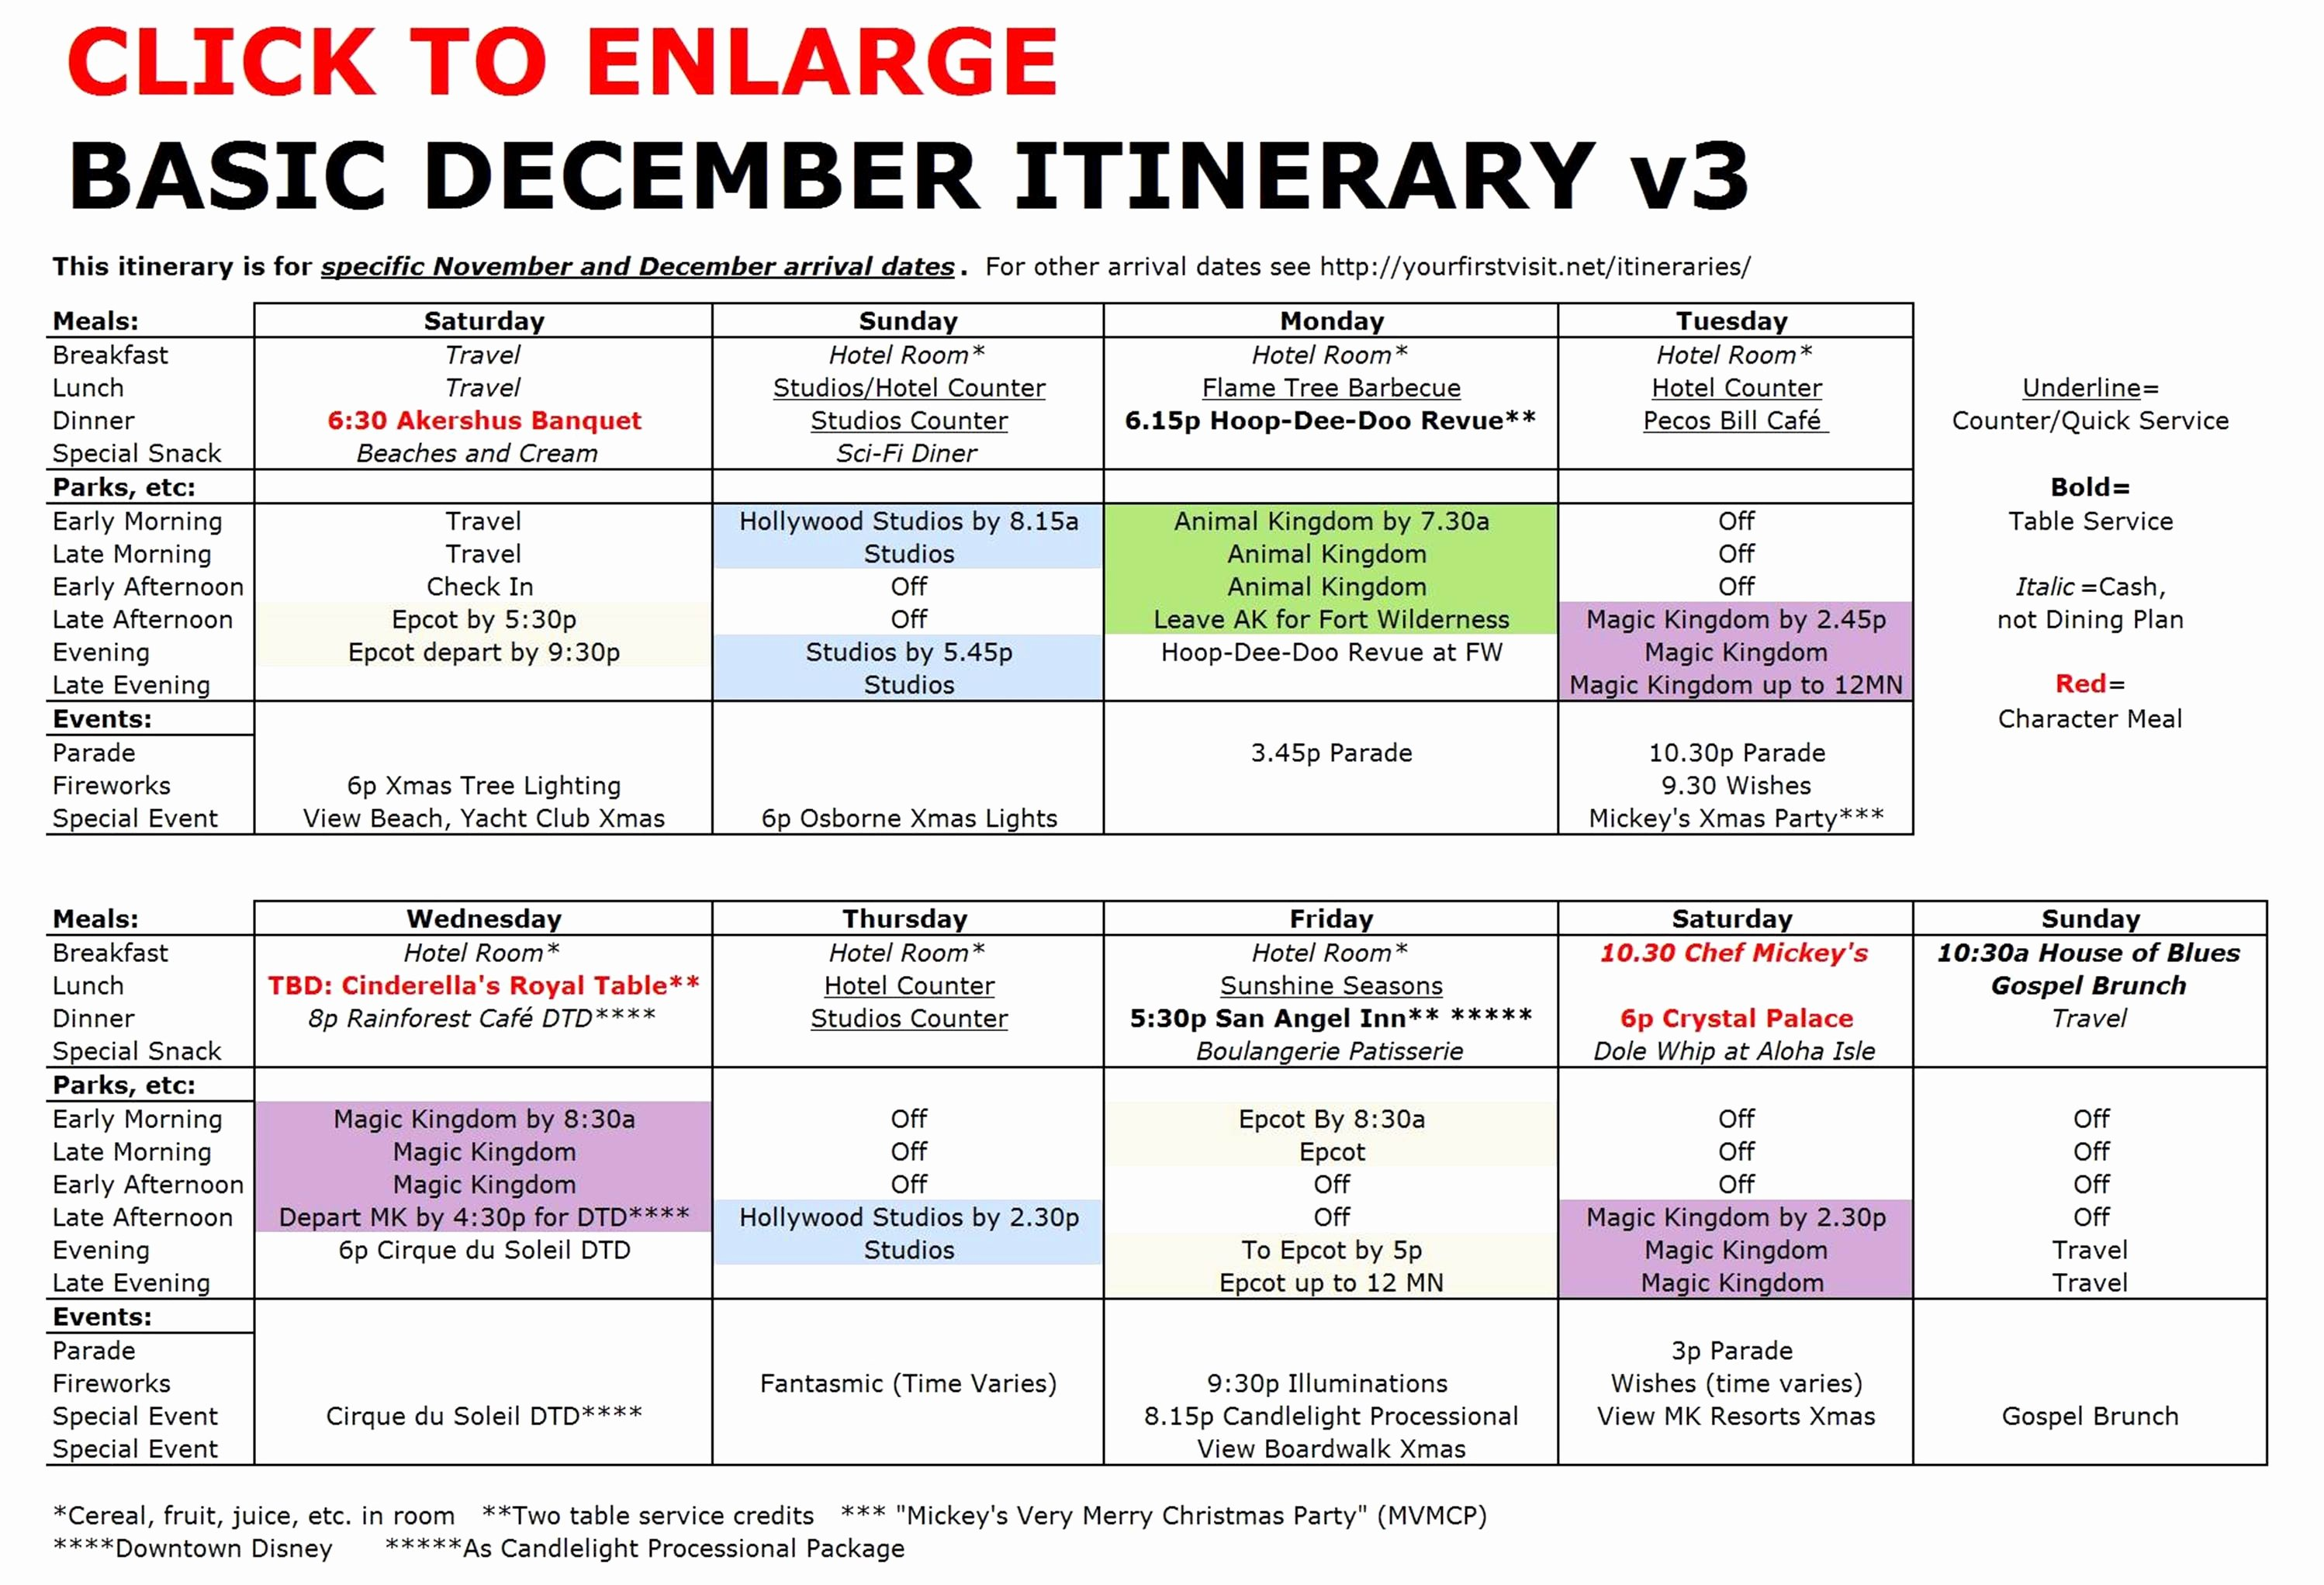 Itinerary Template Google Docs Fresh Google Docs Travel Itinerary Template Unique Itinerary